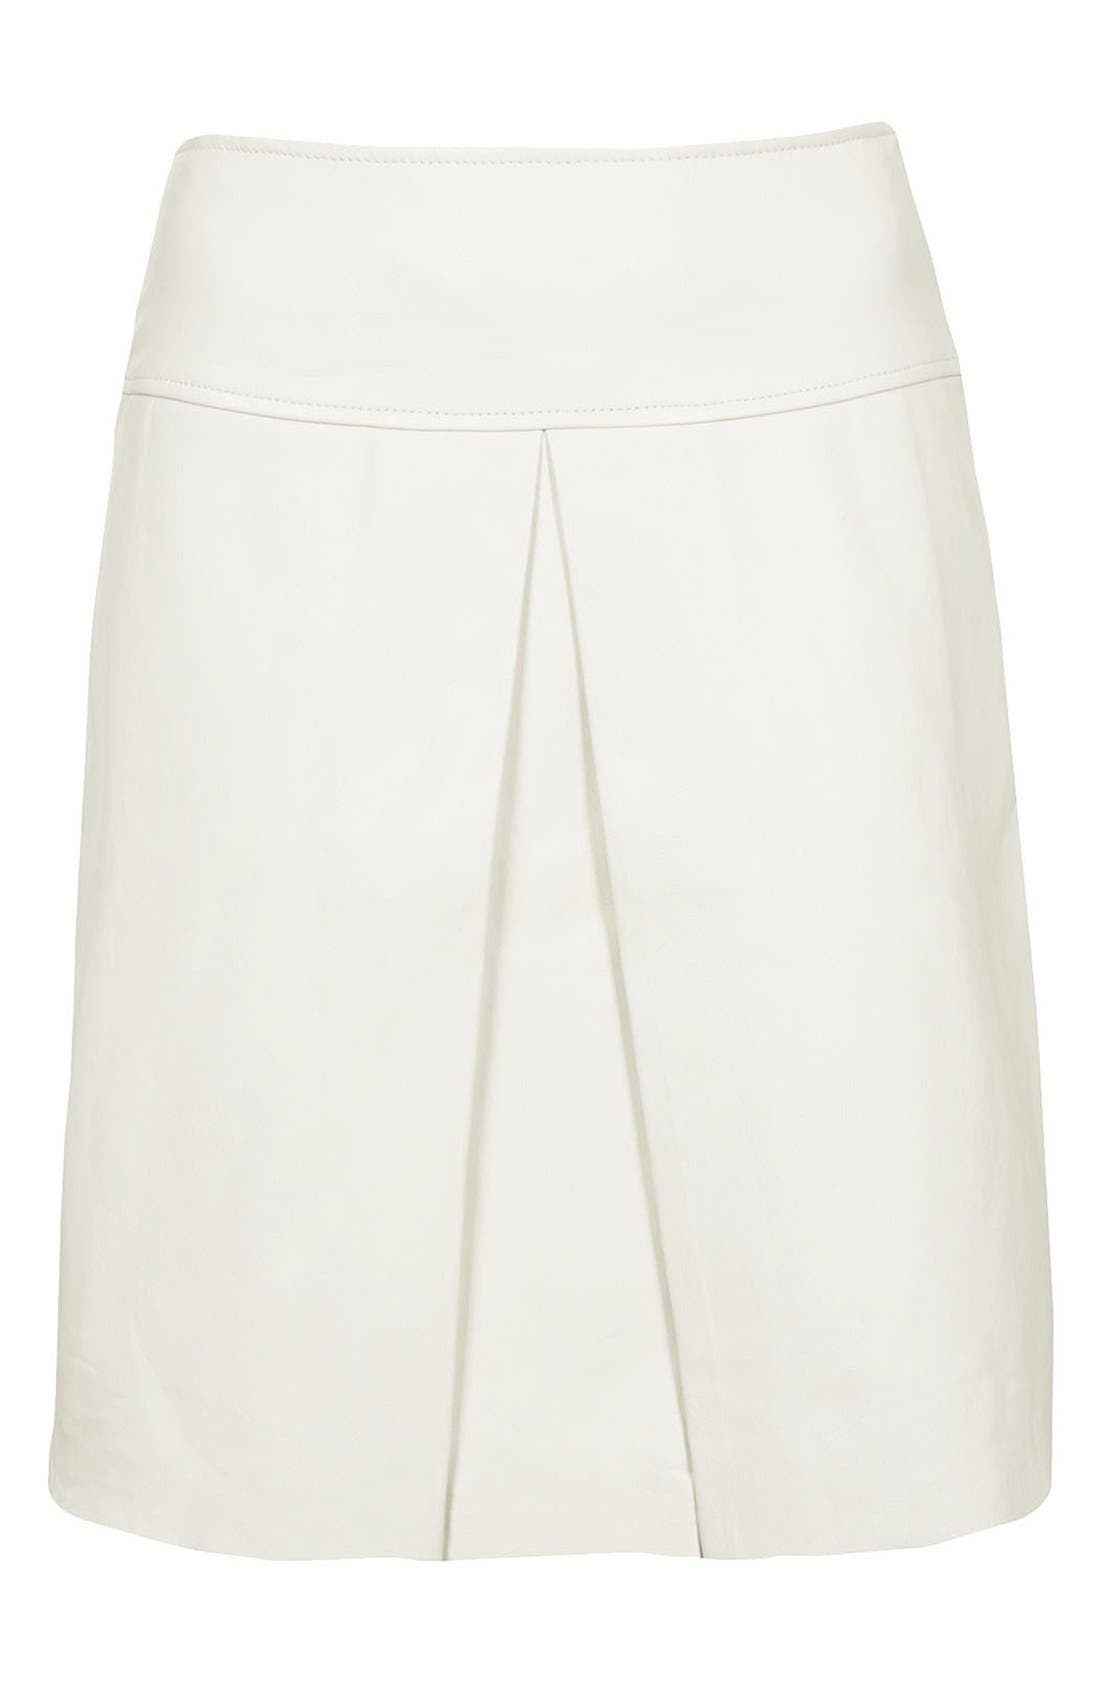 TOPSHOP, 'The Collection Starring Kate Bosworth' Leather Skirt, Main thumbnail 1, color, 100